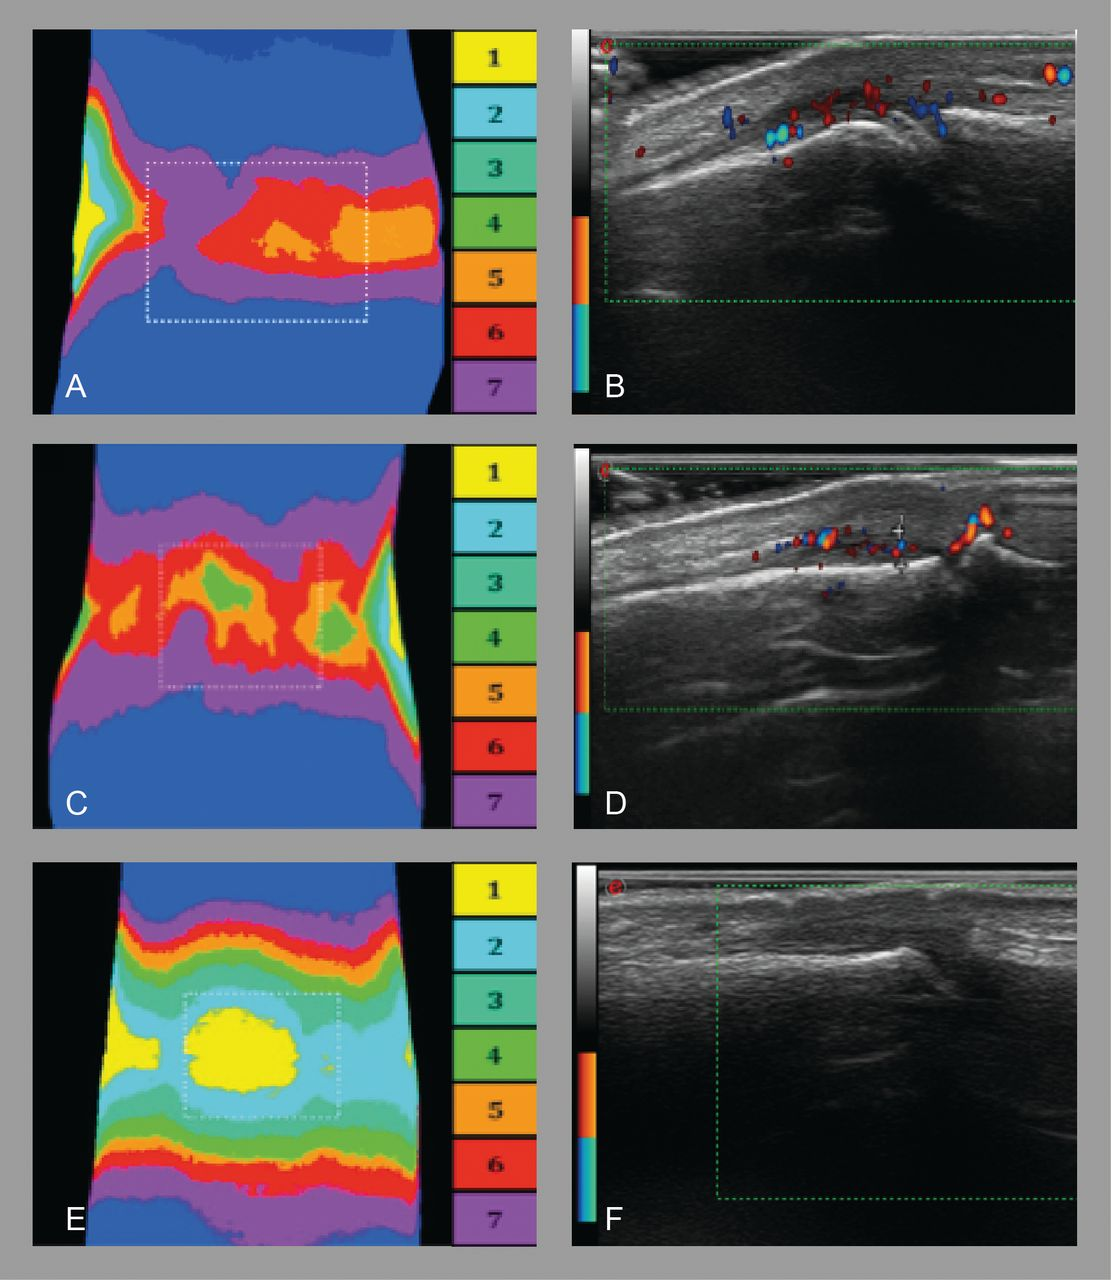 Figure 2 Comparison Of Photo Optical Imaging With Musculoskeletal Ultrasound And Clinical Examination In The Assessment Of Inflammatory Activity In Proximal Interphalangeal Joints In Rheumatoid Arthritis And Osteoarthritis The Journal Of Rheumatology